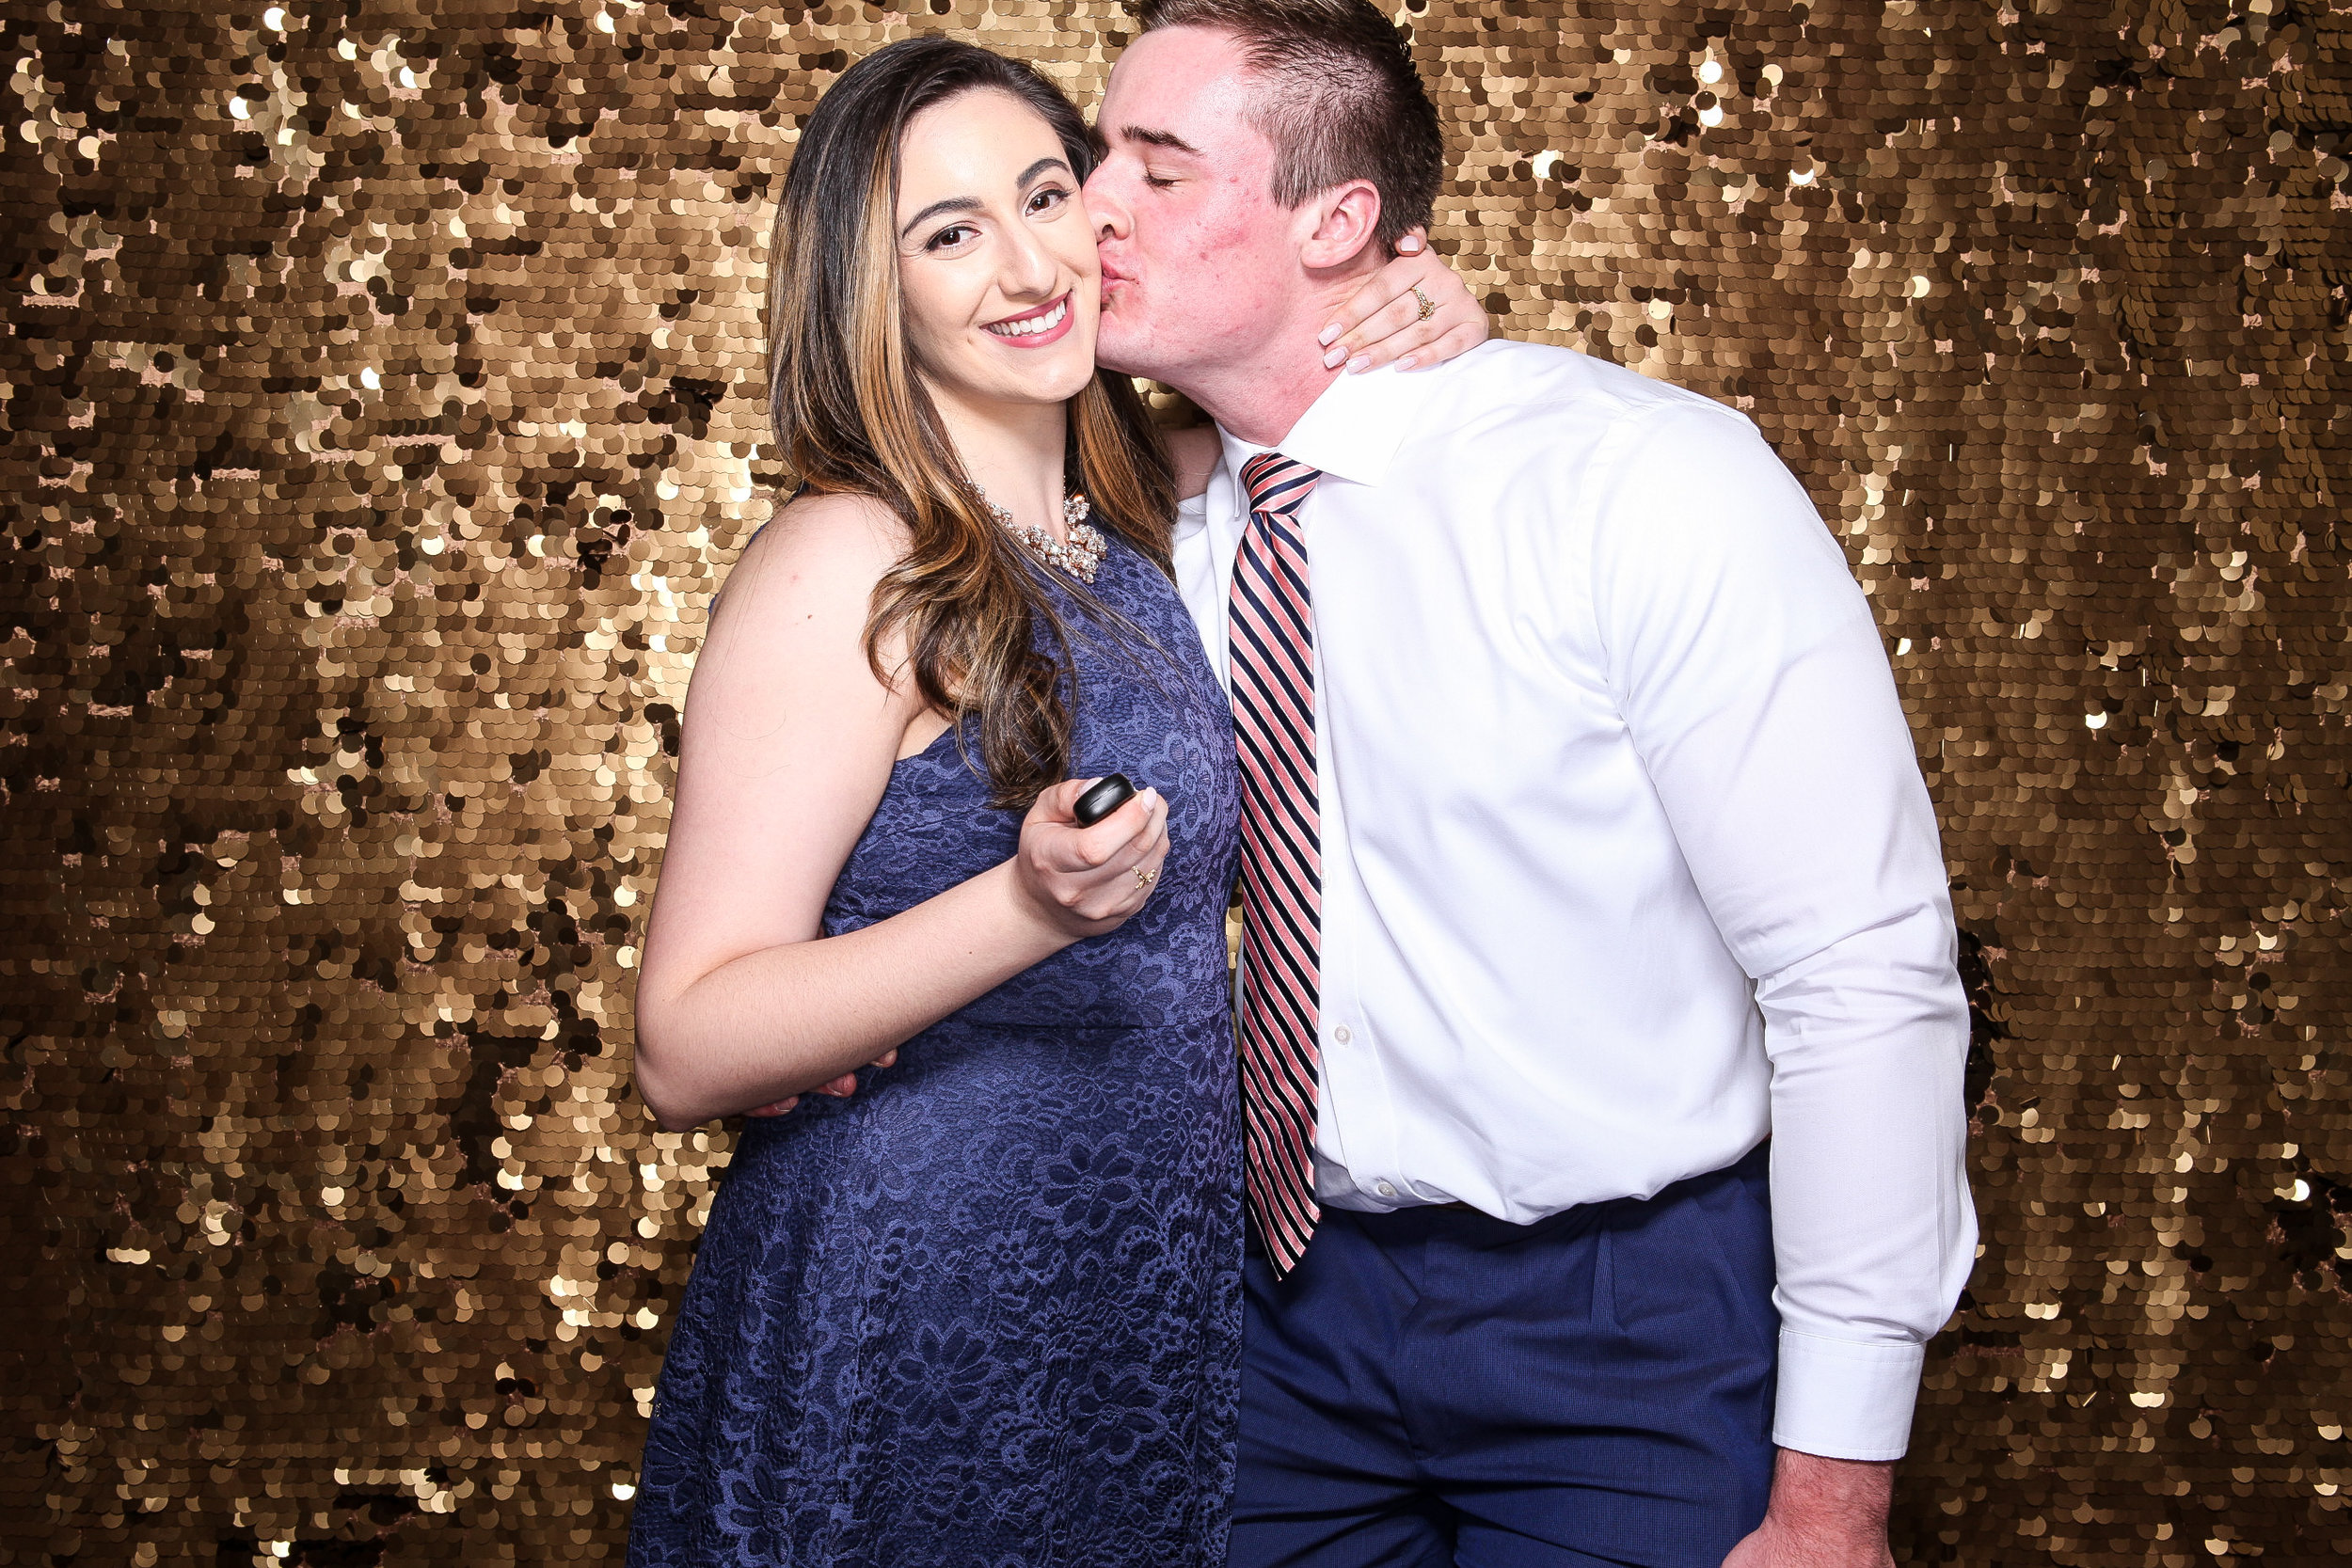 20190503_Adelphi_Senior_Formal-313.jpg